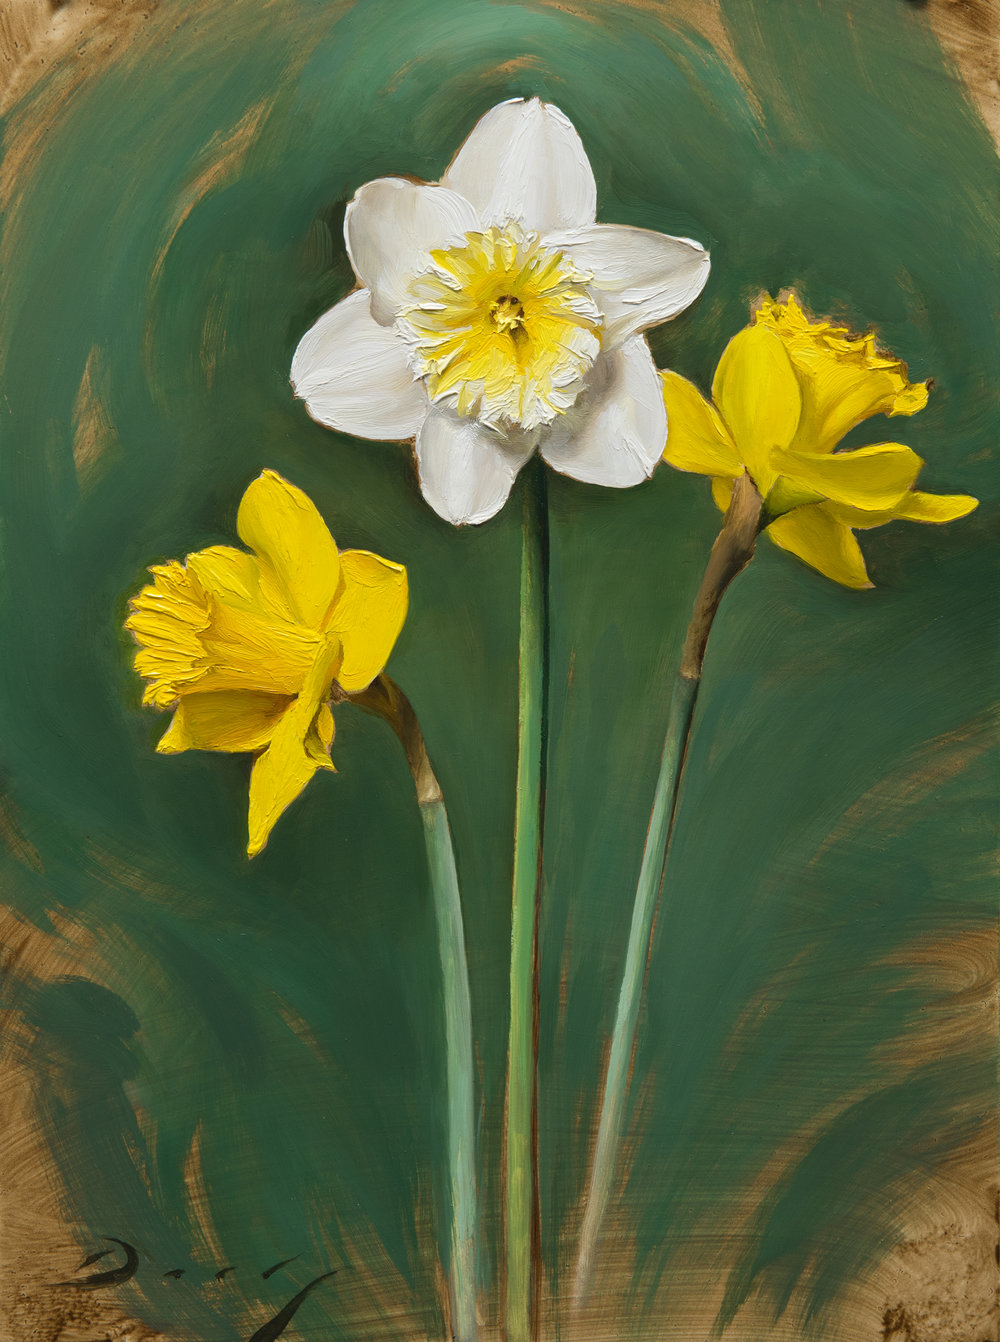 Daffodils - April 2017